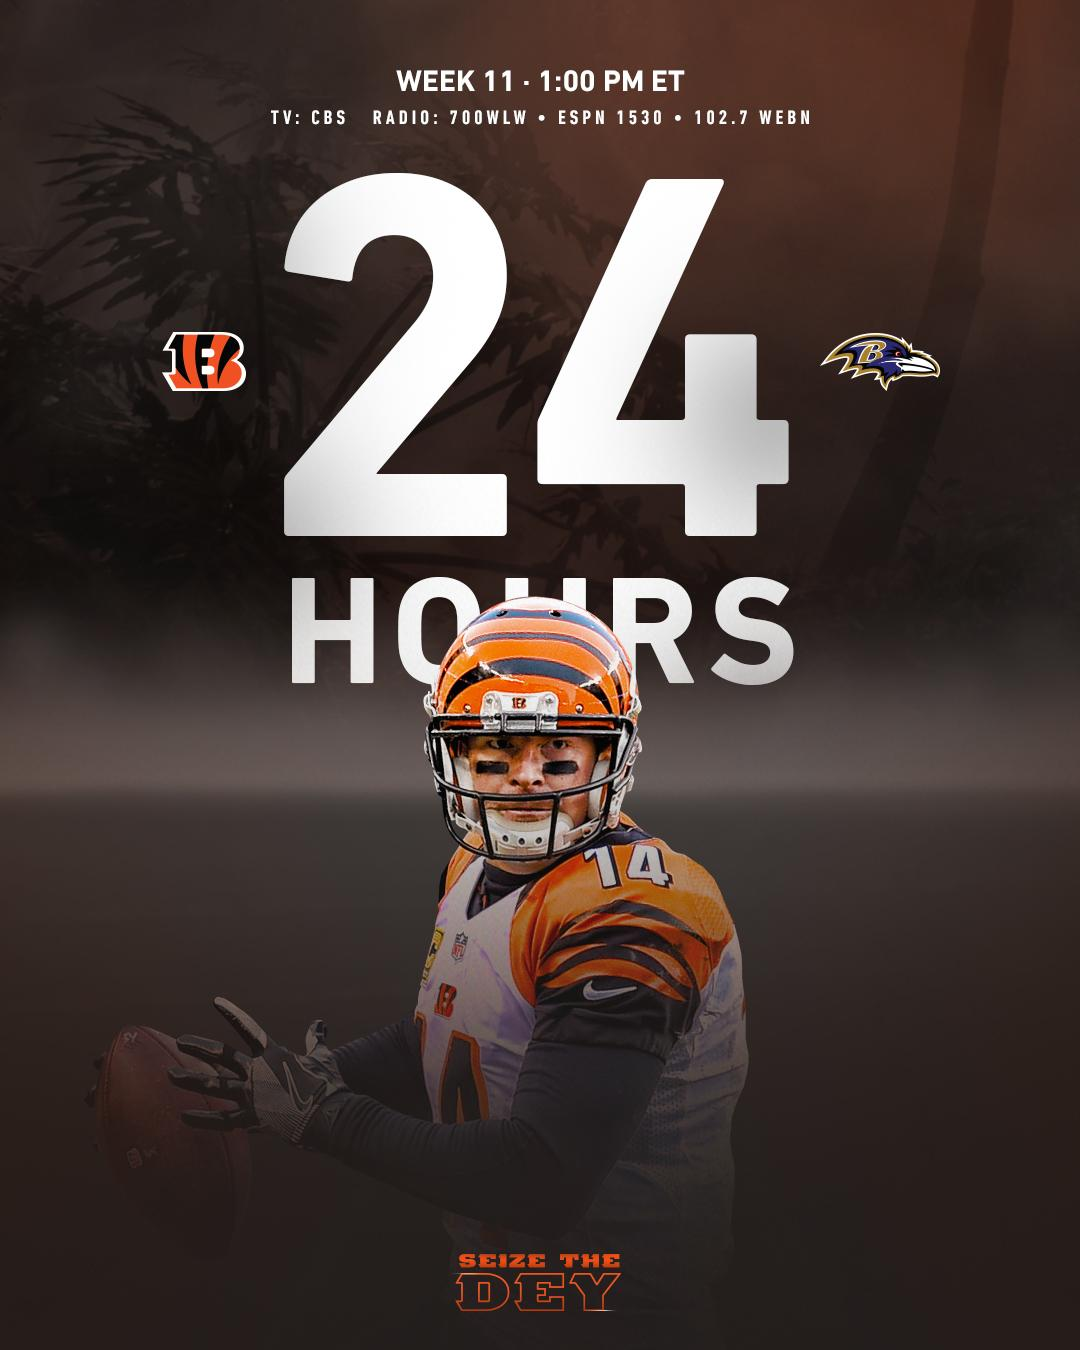 Tomorrow.  #CINvsBAL #SeizeTheDEY https://t.co/rI1eznn85Q